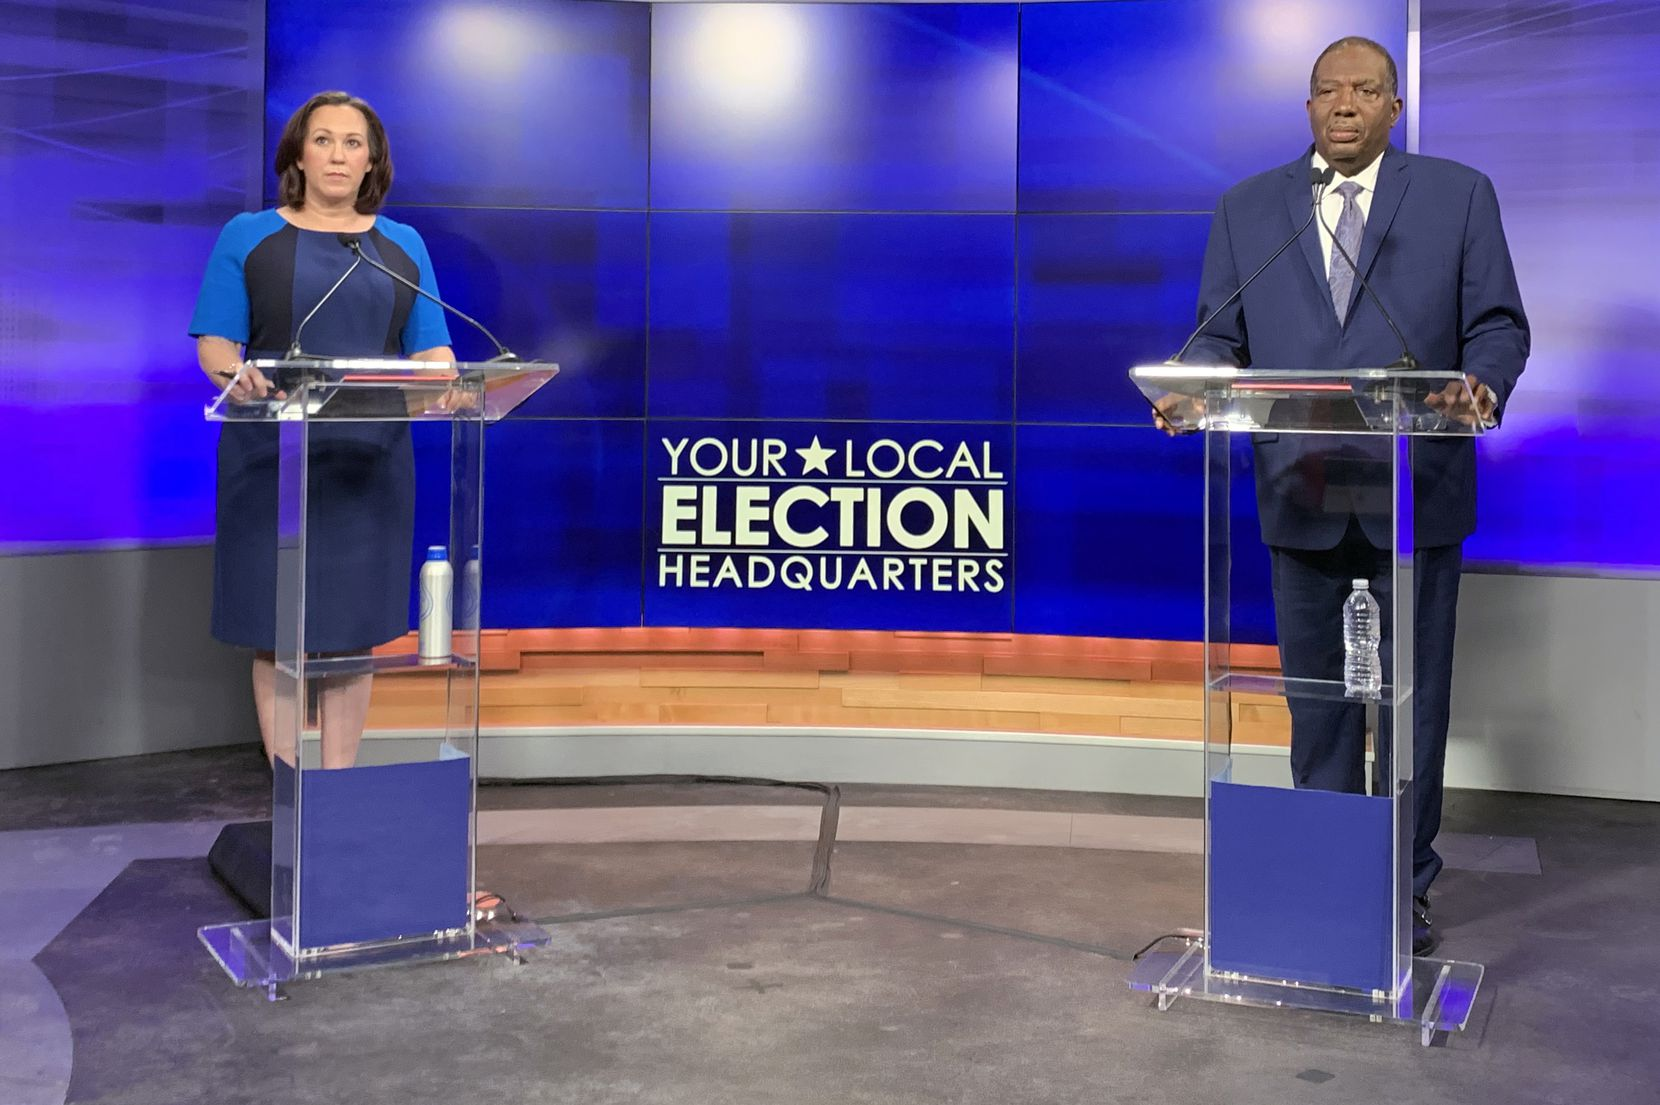 Decorated veteran MJ Hegar of Round Rock (left), leads Dallas state Sen. Royce West (right) in their Democratic runoff for U.S. Senate among women, Hispanics and college-educated voters, though West leads her among African Americans, the poll found.